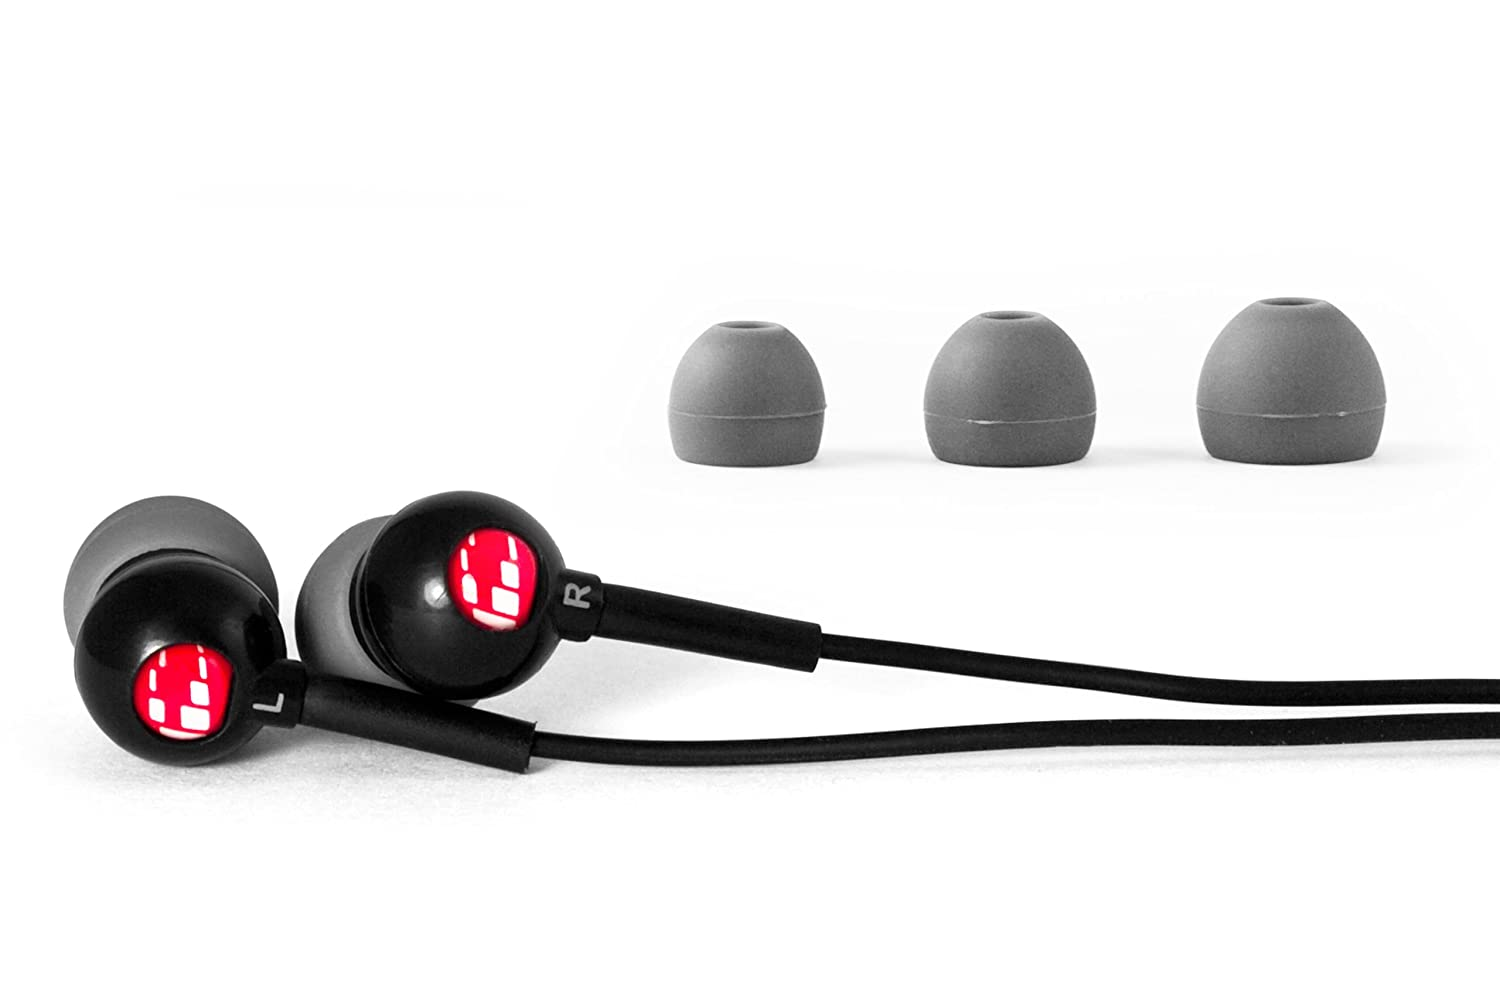 H2O Audio CB1-BK Flex All Sport Waterproof In-Ear Headphones (Onyx Black)